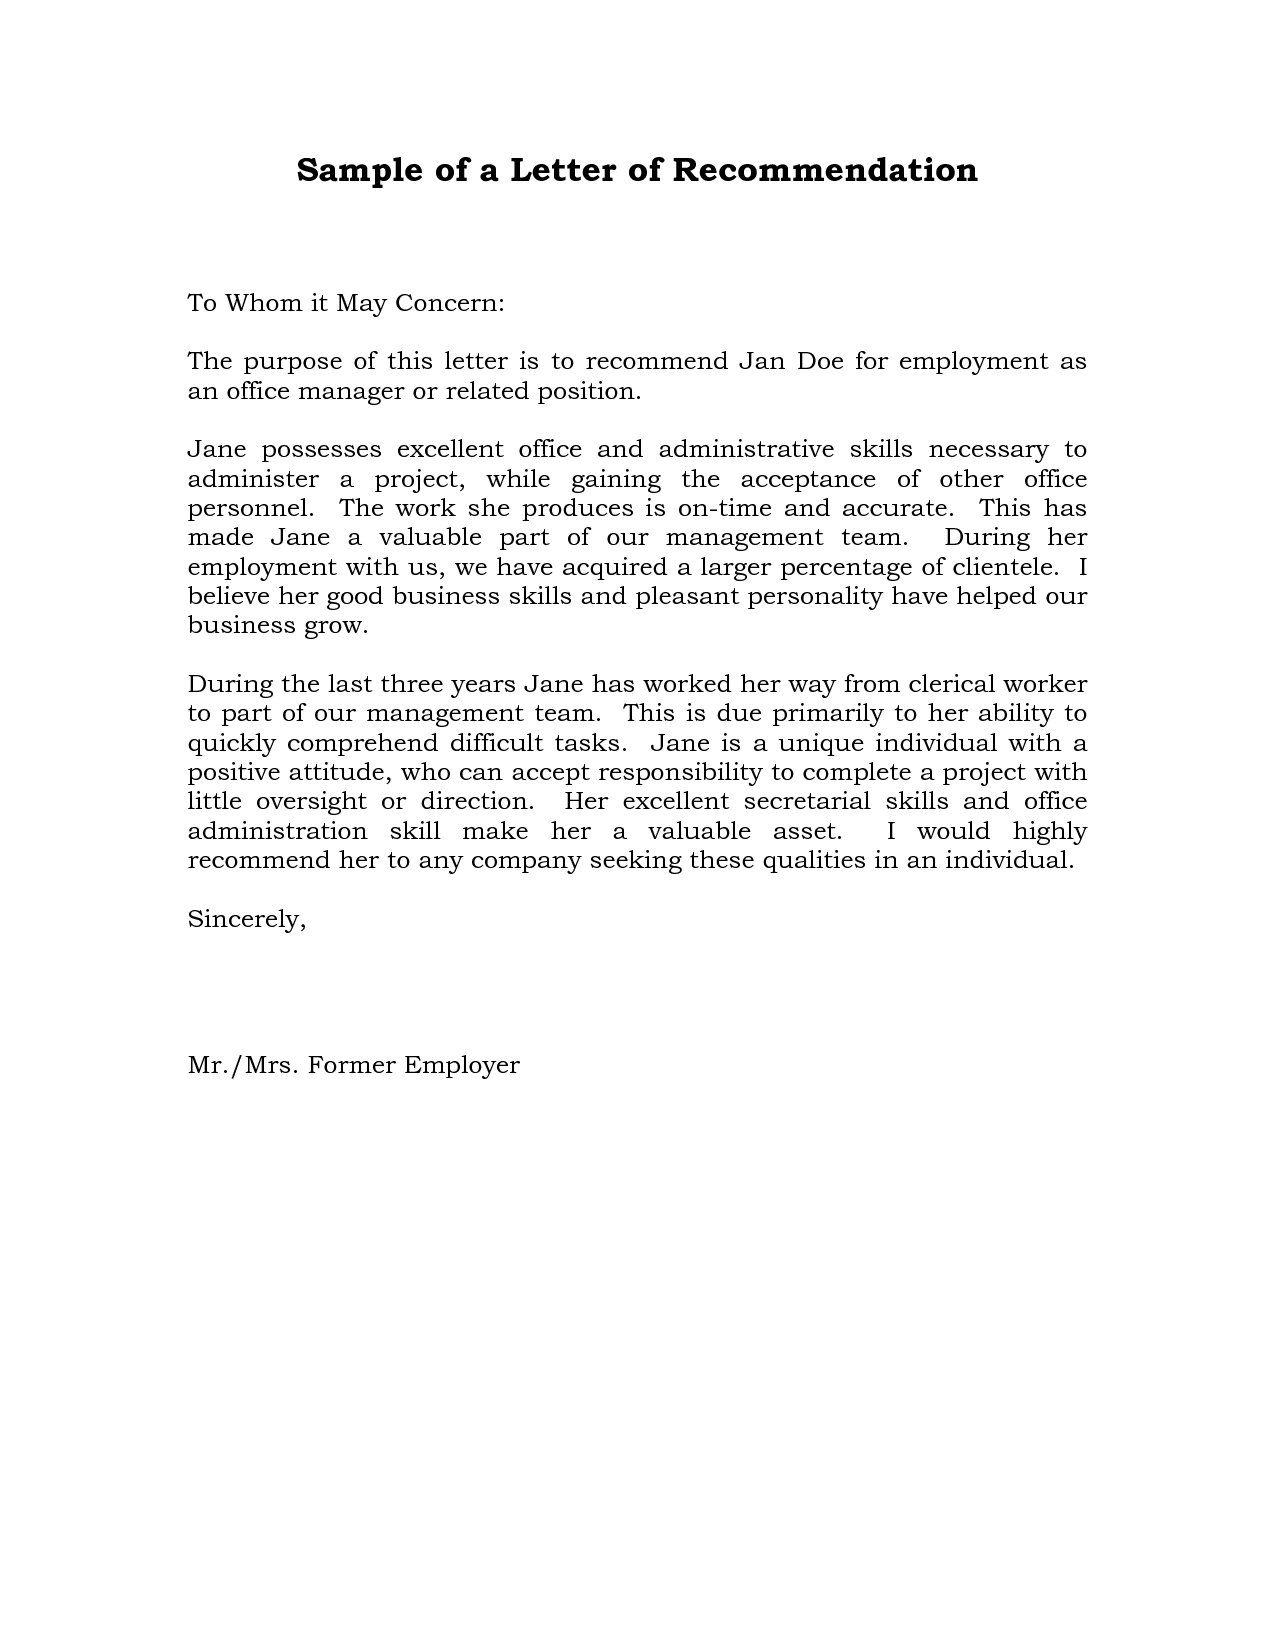 sample job letter of recommendation recommendation letter  job recommendation